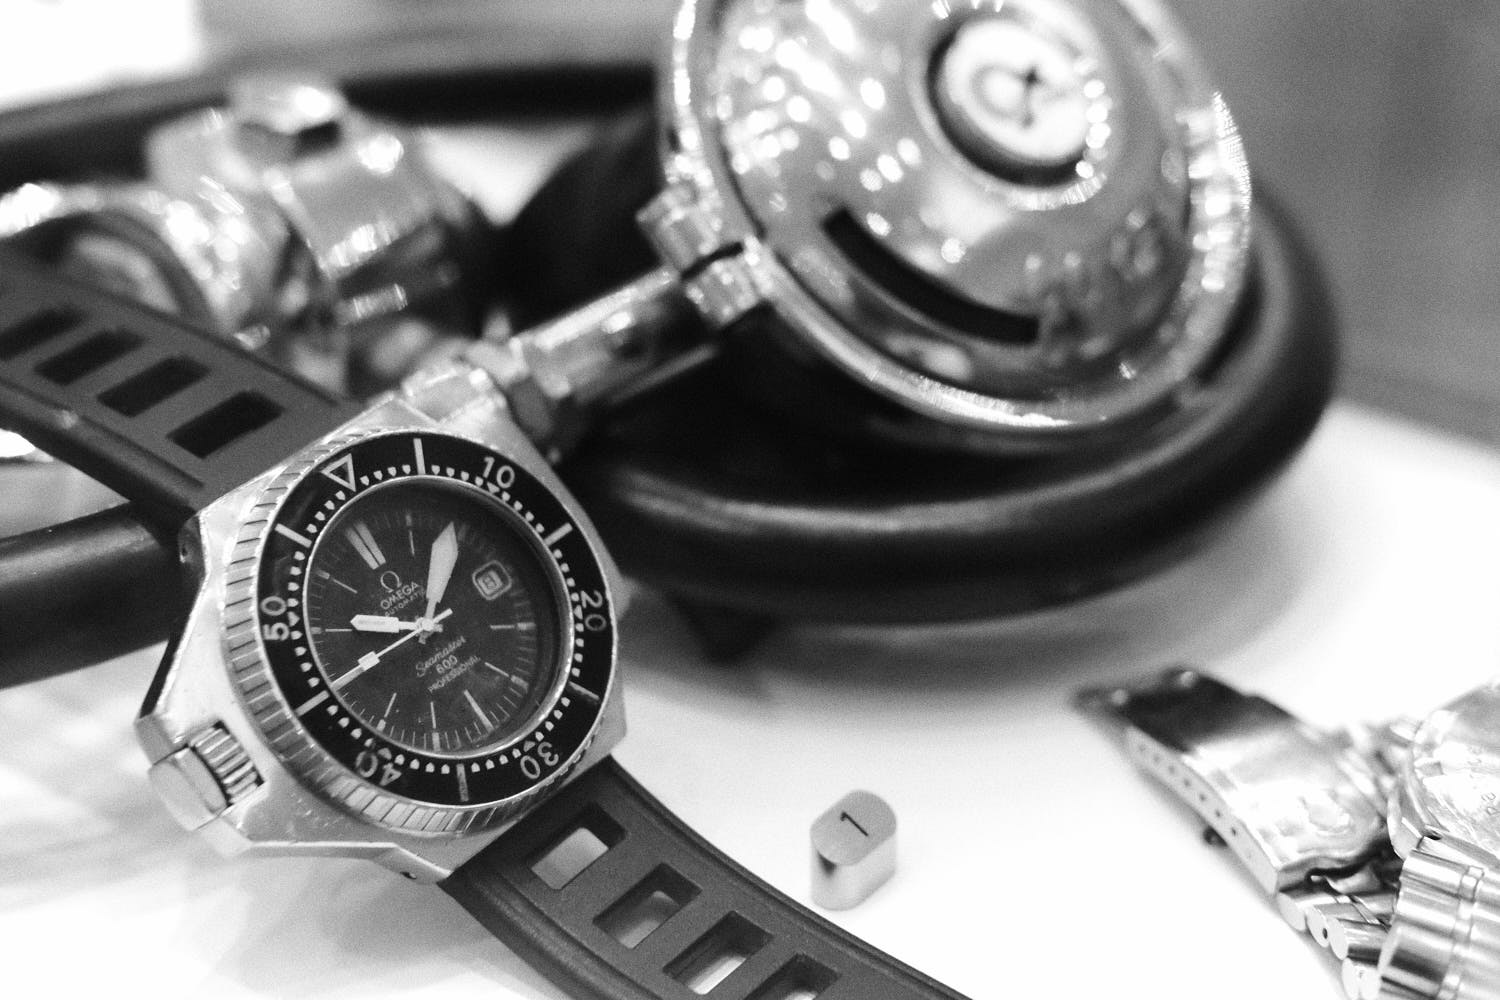 ploprof-comex-Omega-Museum-Visit-Monochrome-Watches